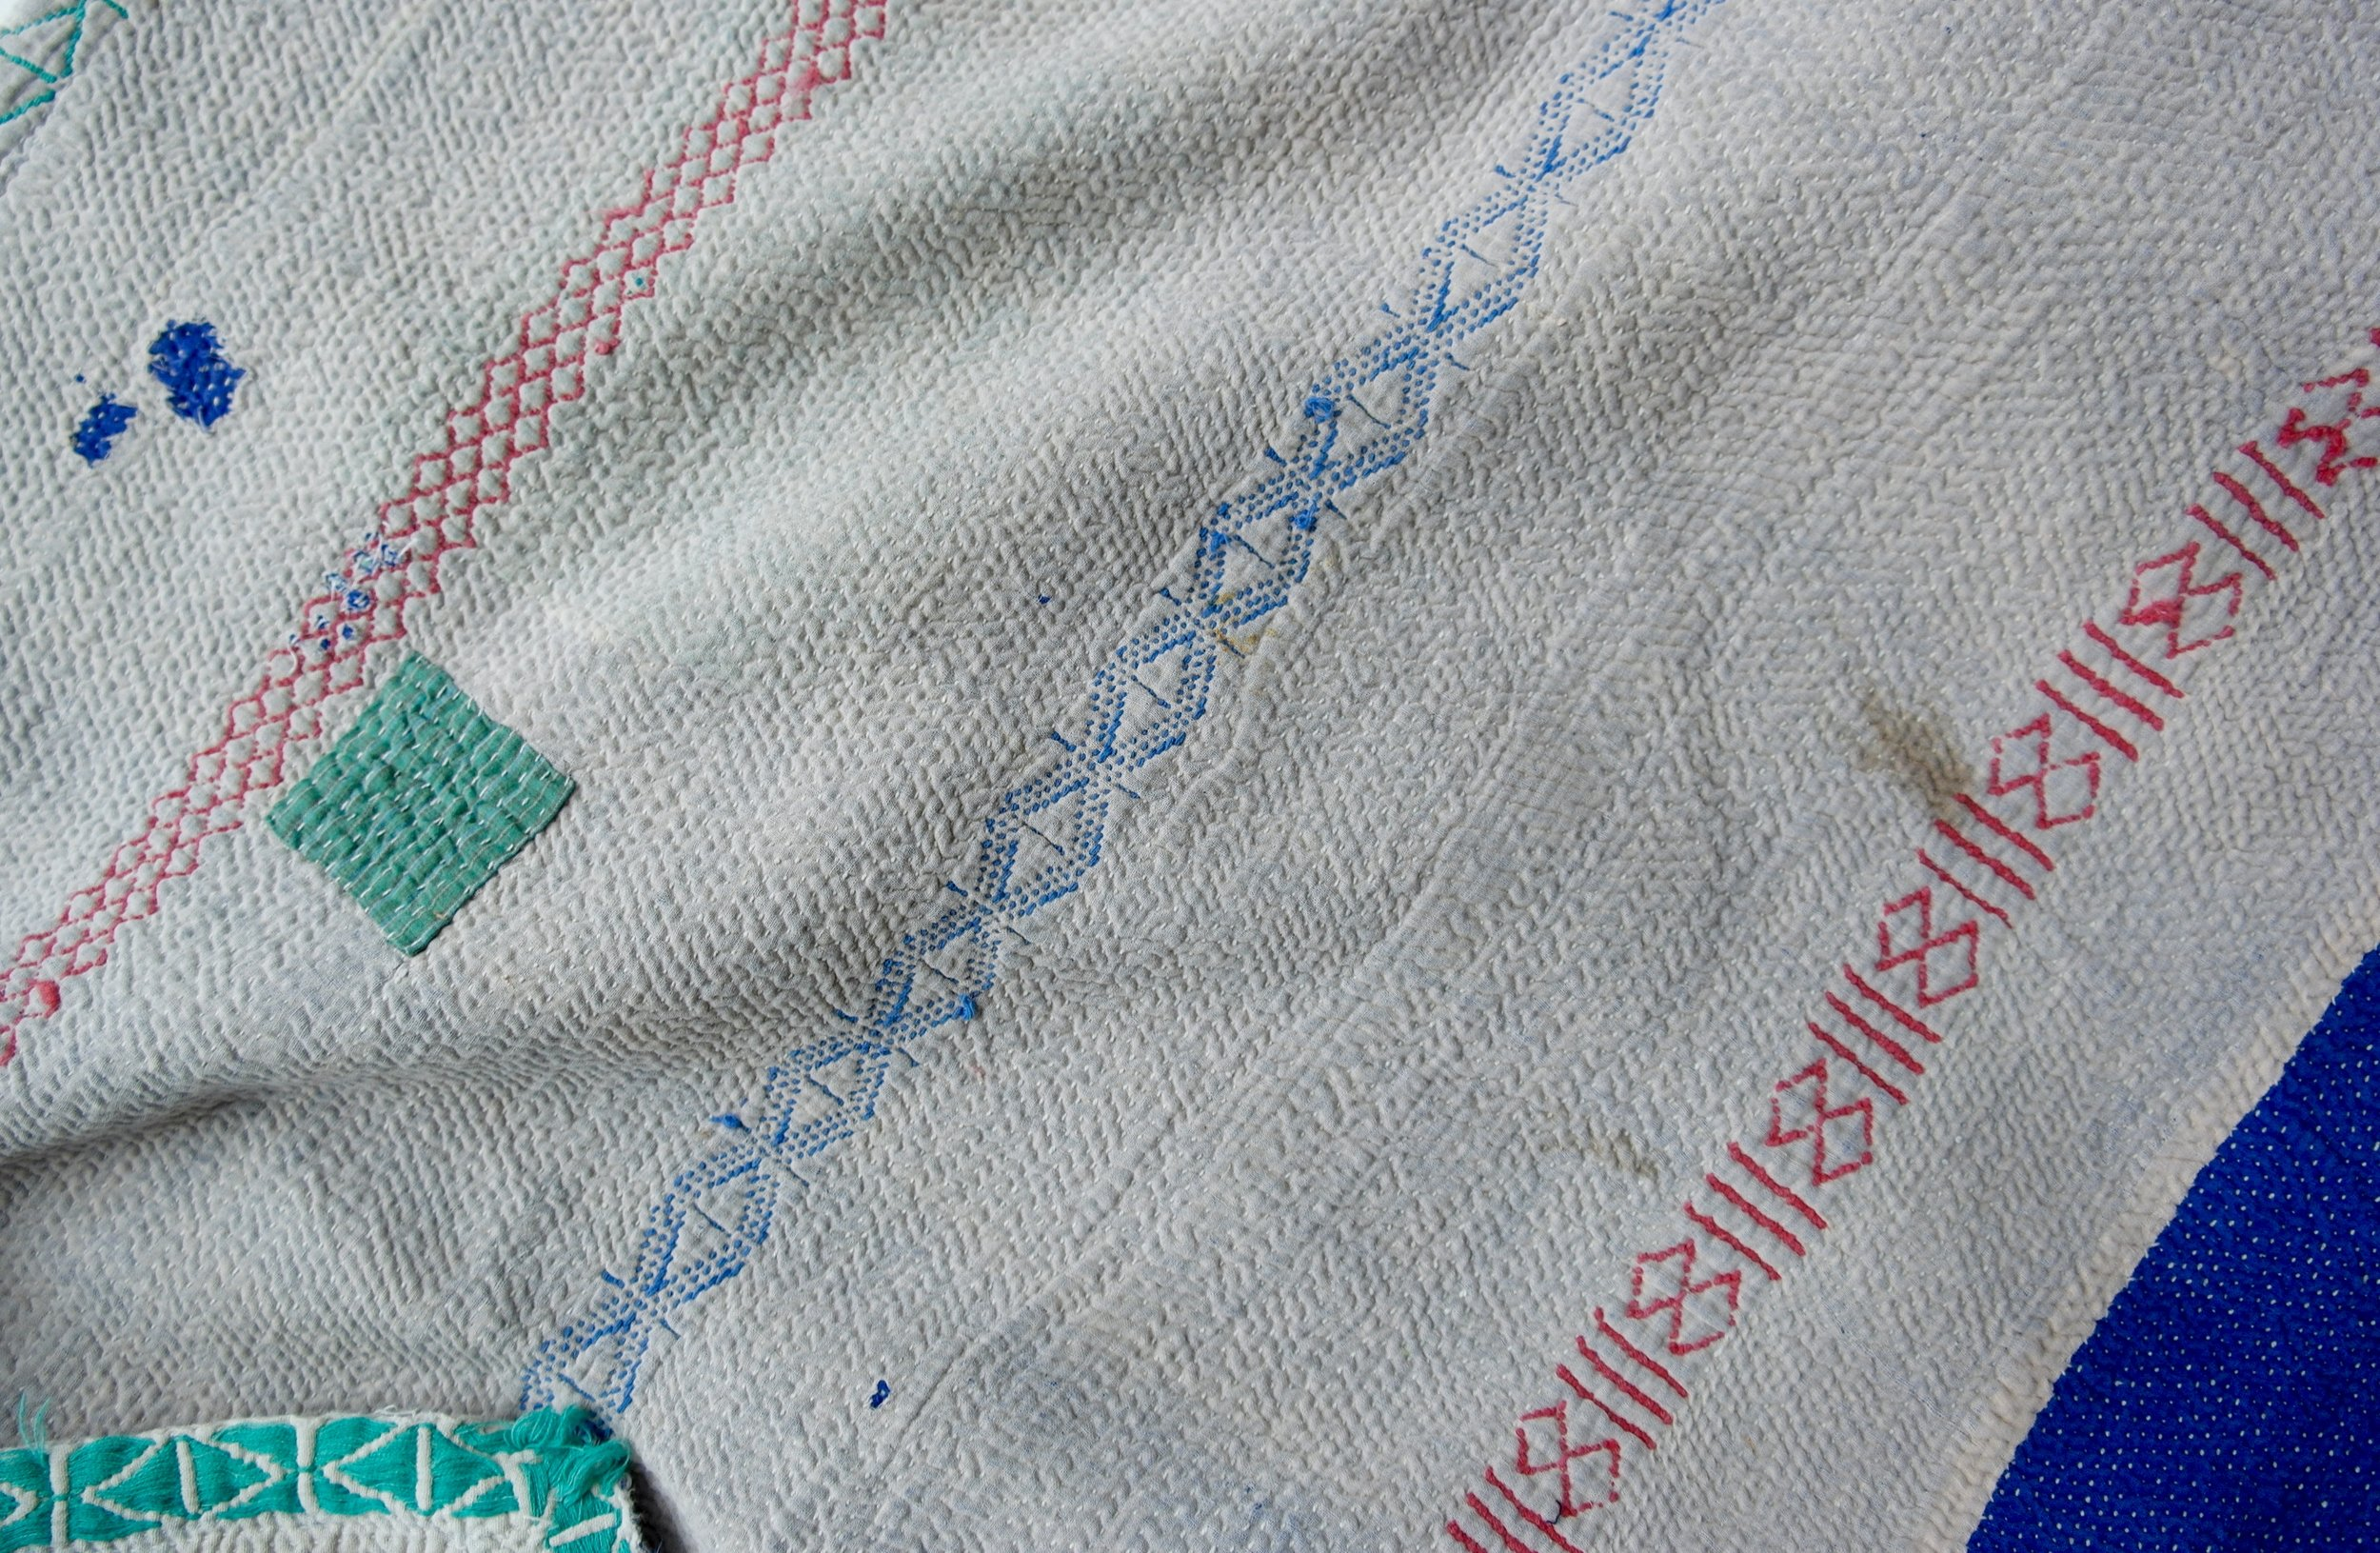 Kantha quilt with some staining, a sewn-on patch and a peeling spot